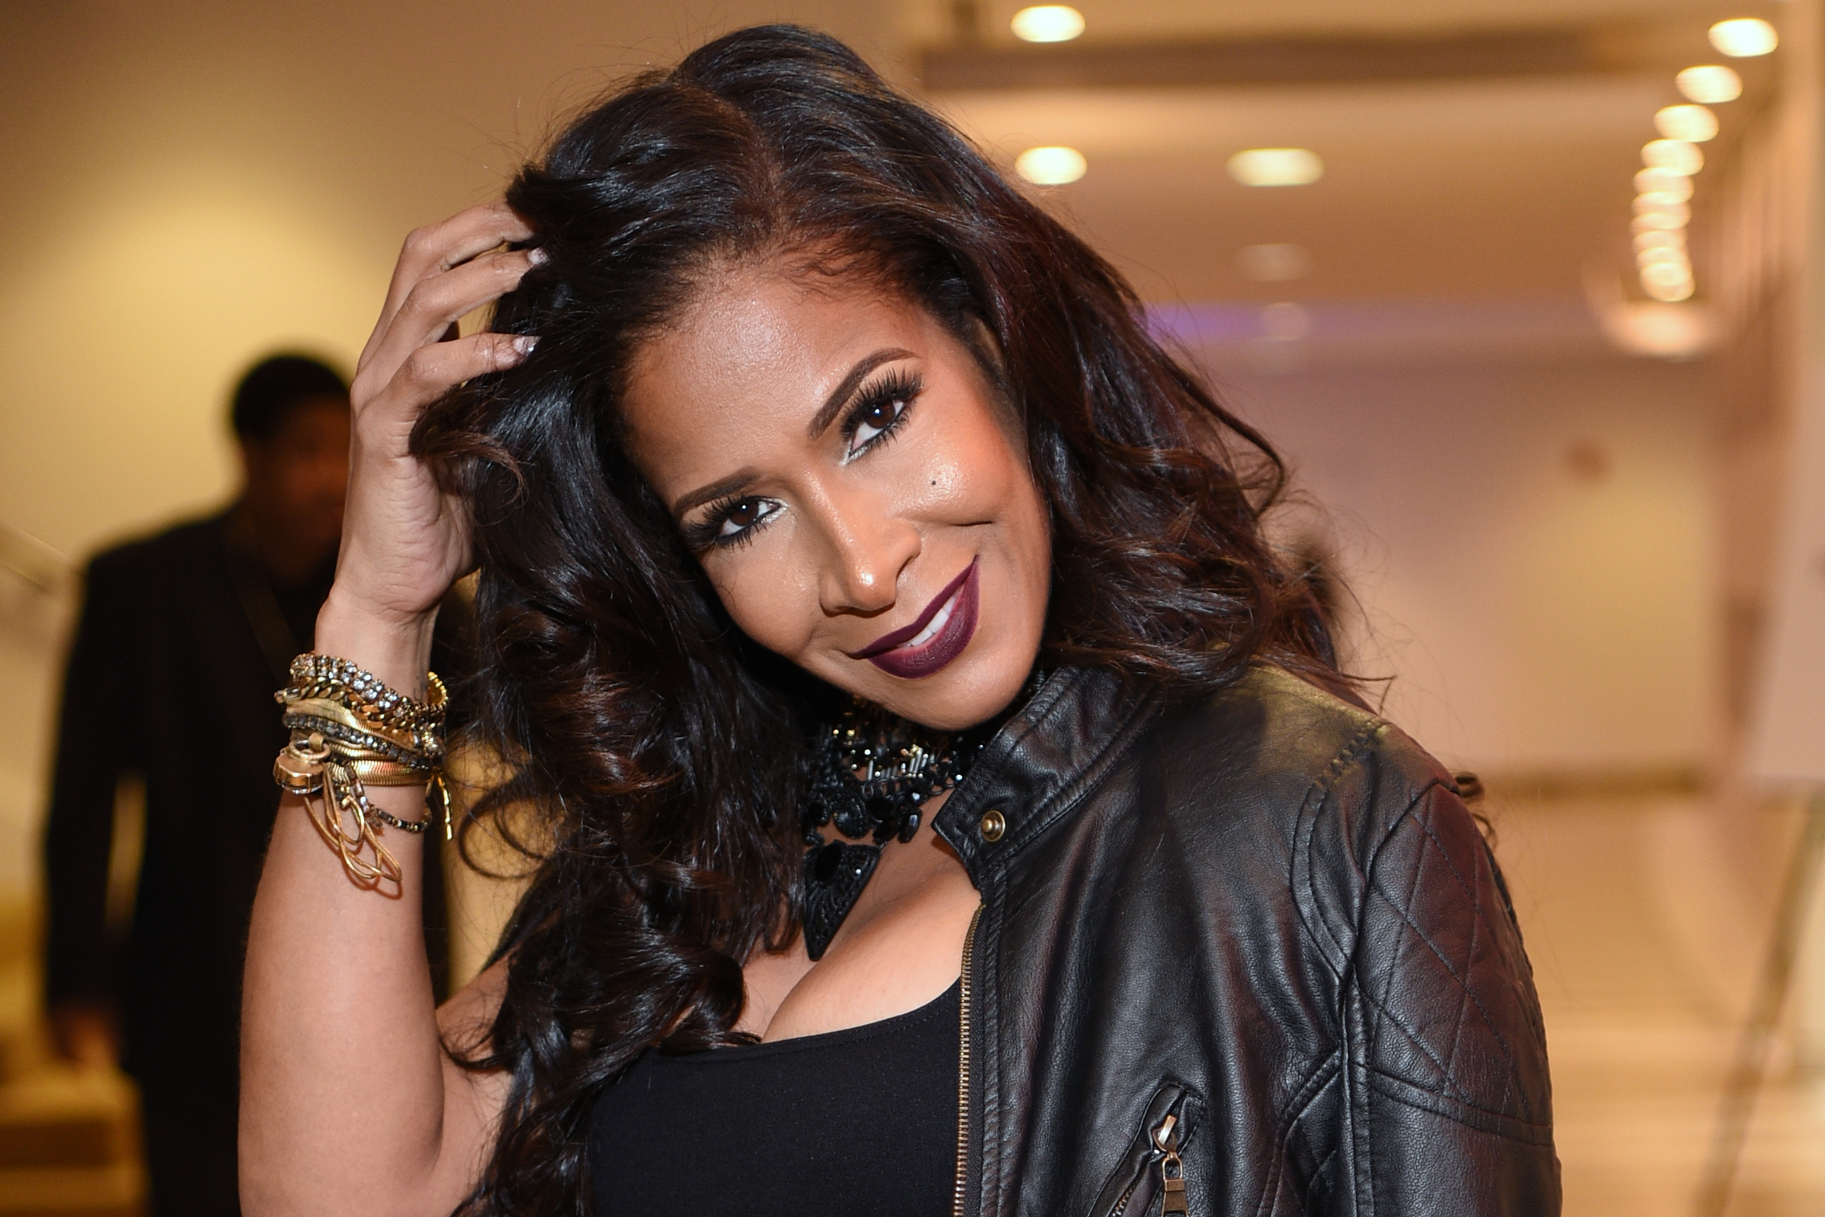 Sheree Whitfield Has Been Fired From RHOA Allegedly Because Her Prison Bae Could Not Be Filmed, No Story line!